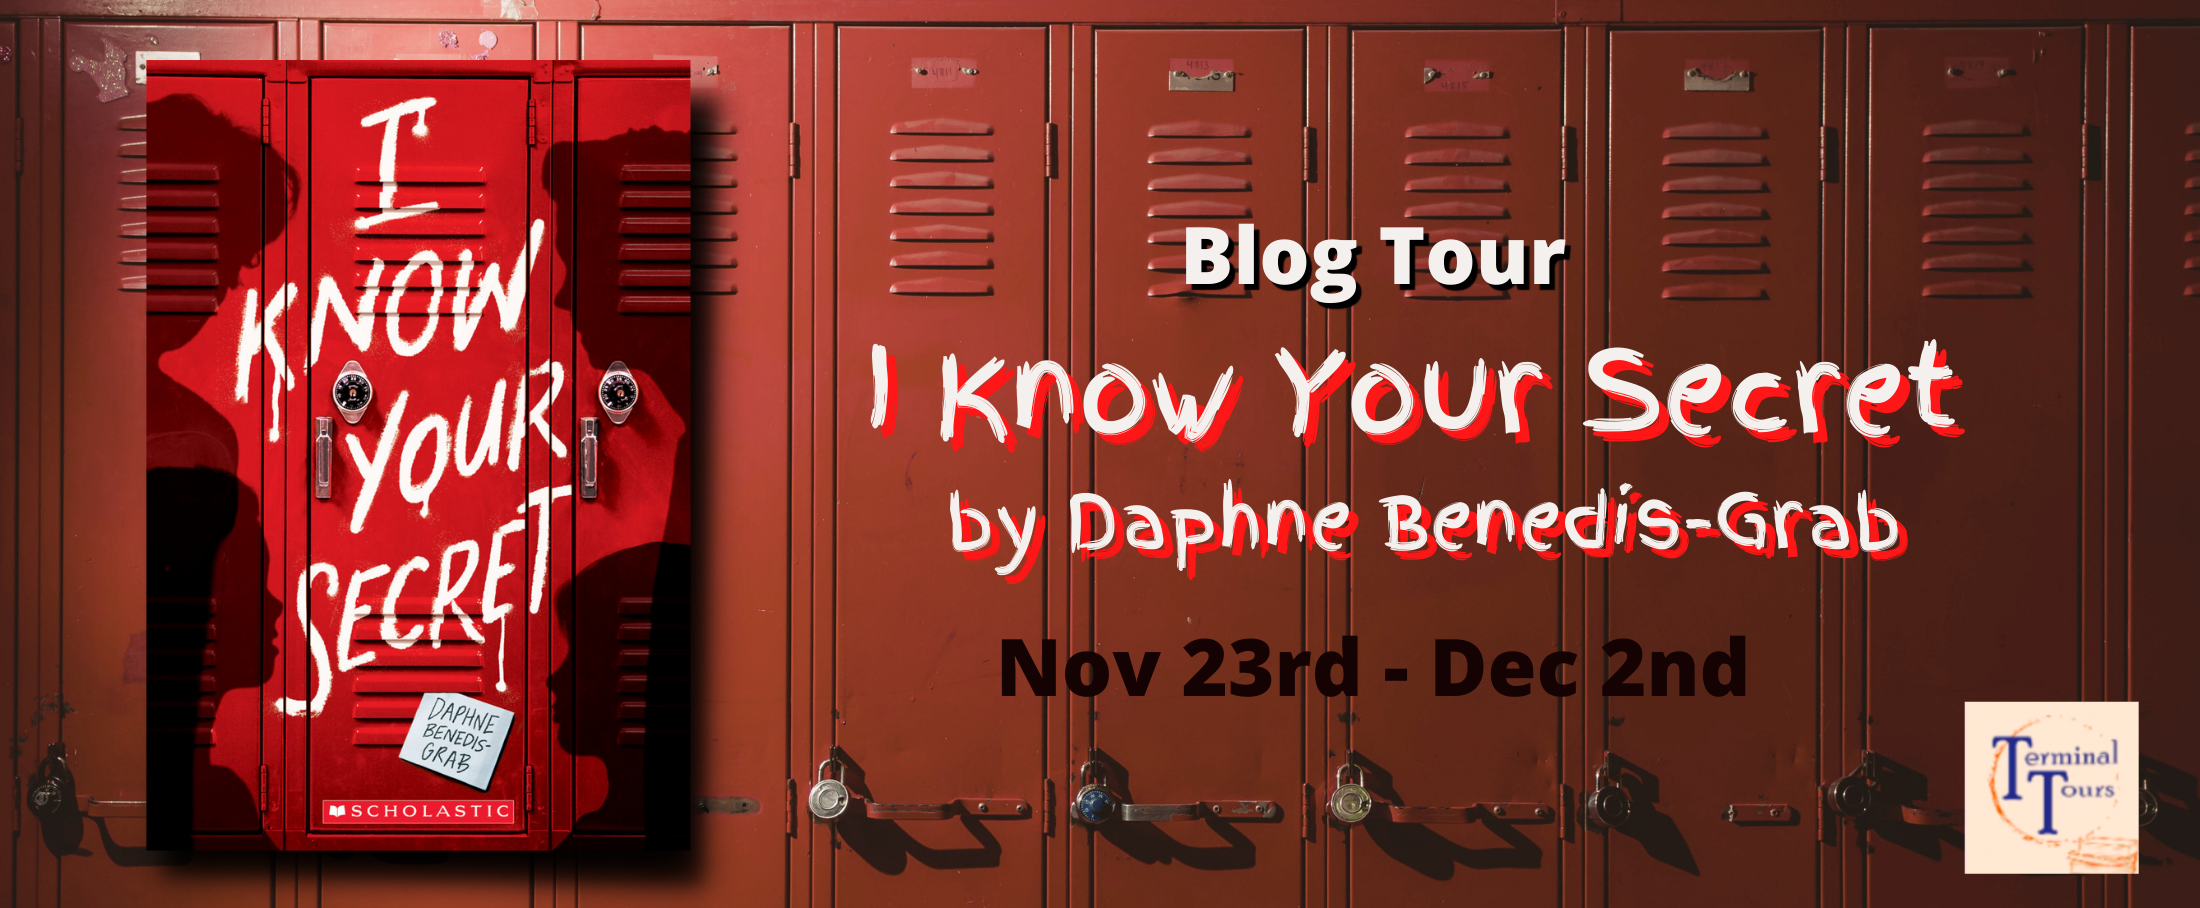 Blog Tour: I Know Your Secret by Daphne Benedis-Grab (Aesthetic Board!)